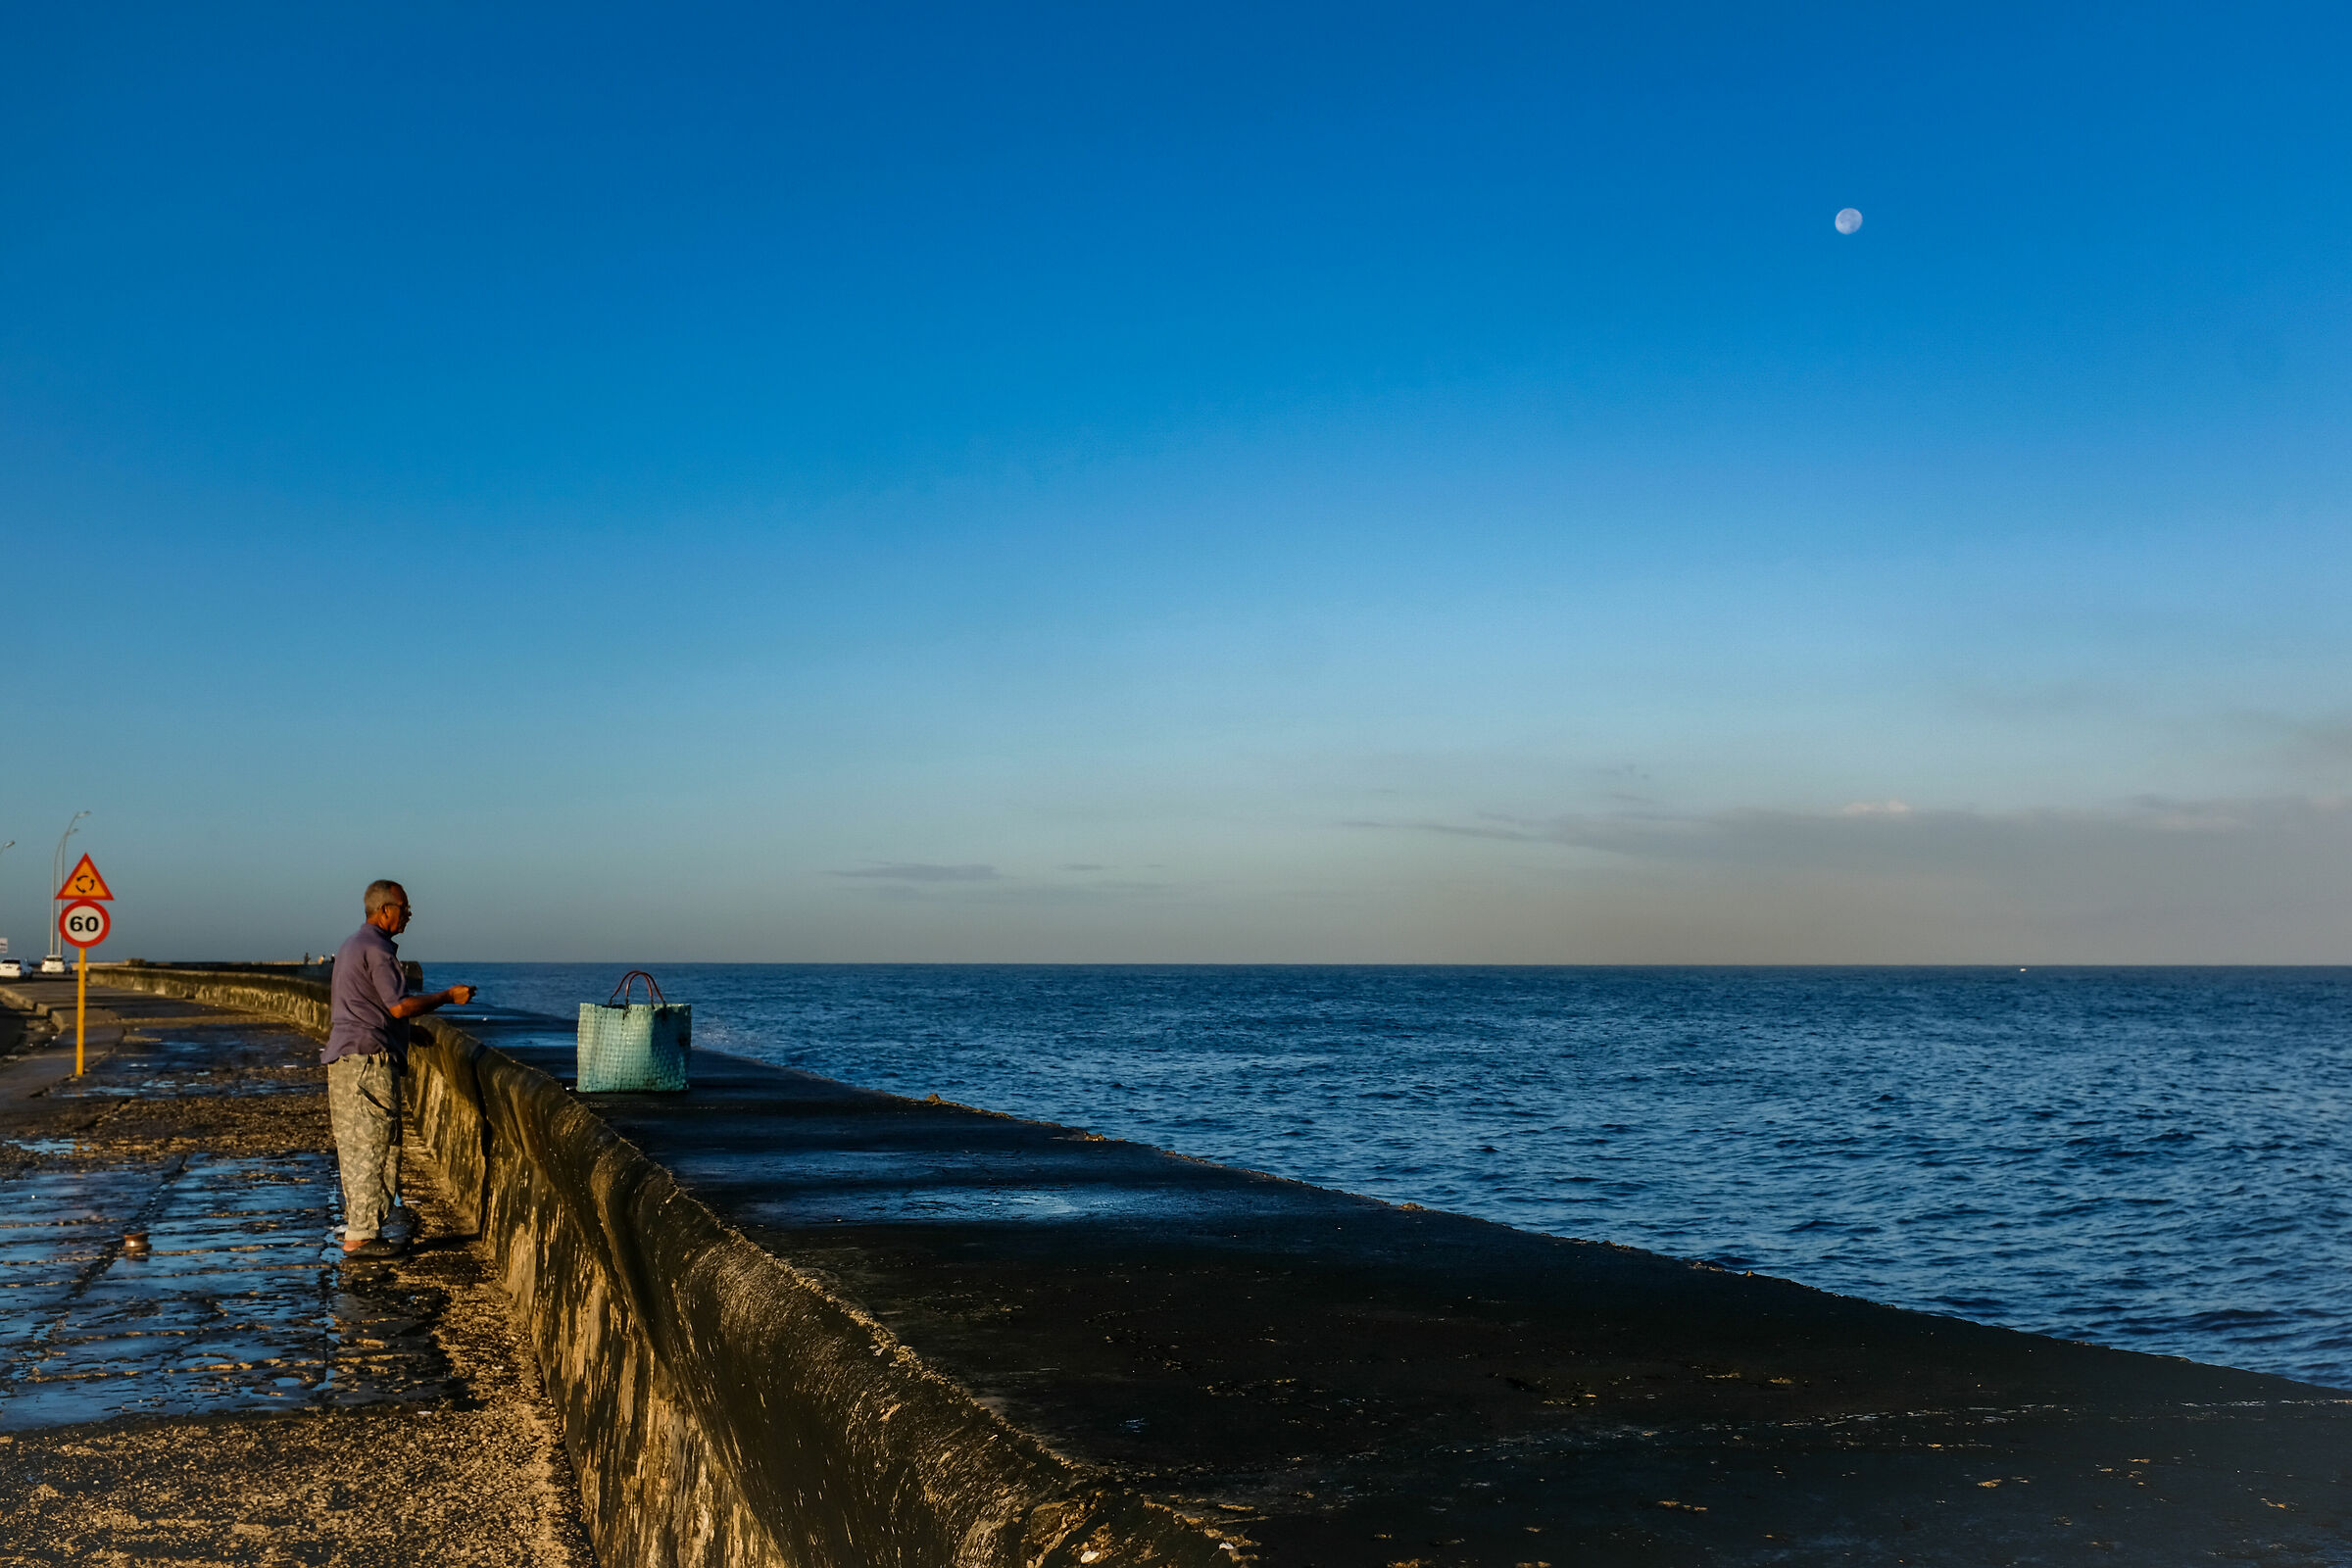 Morning fishing on the Malecon...